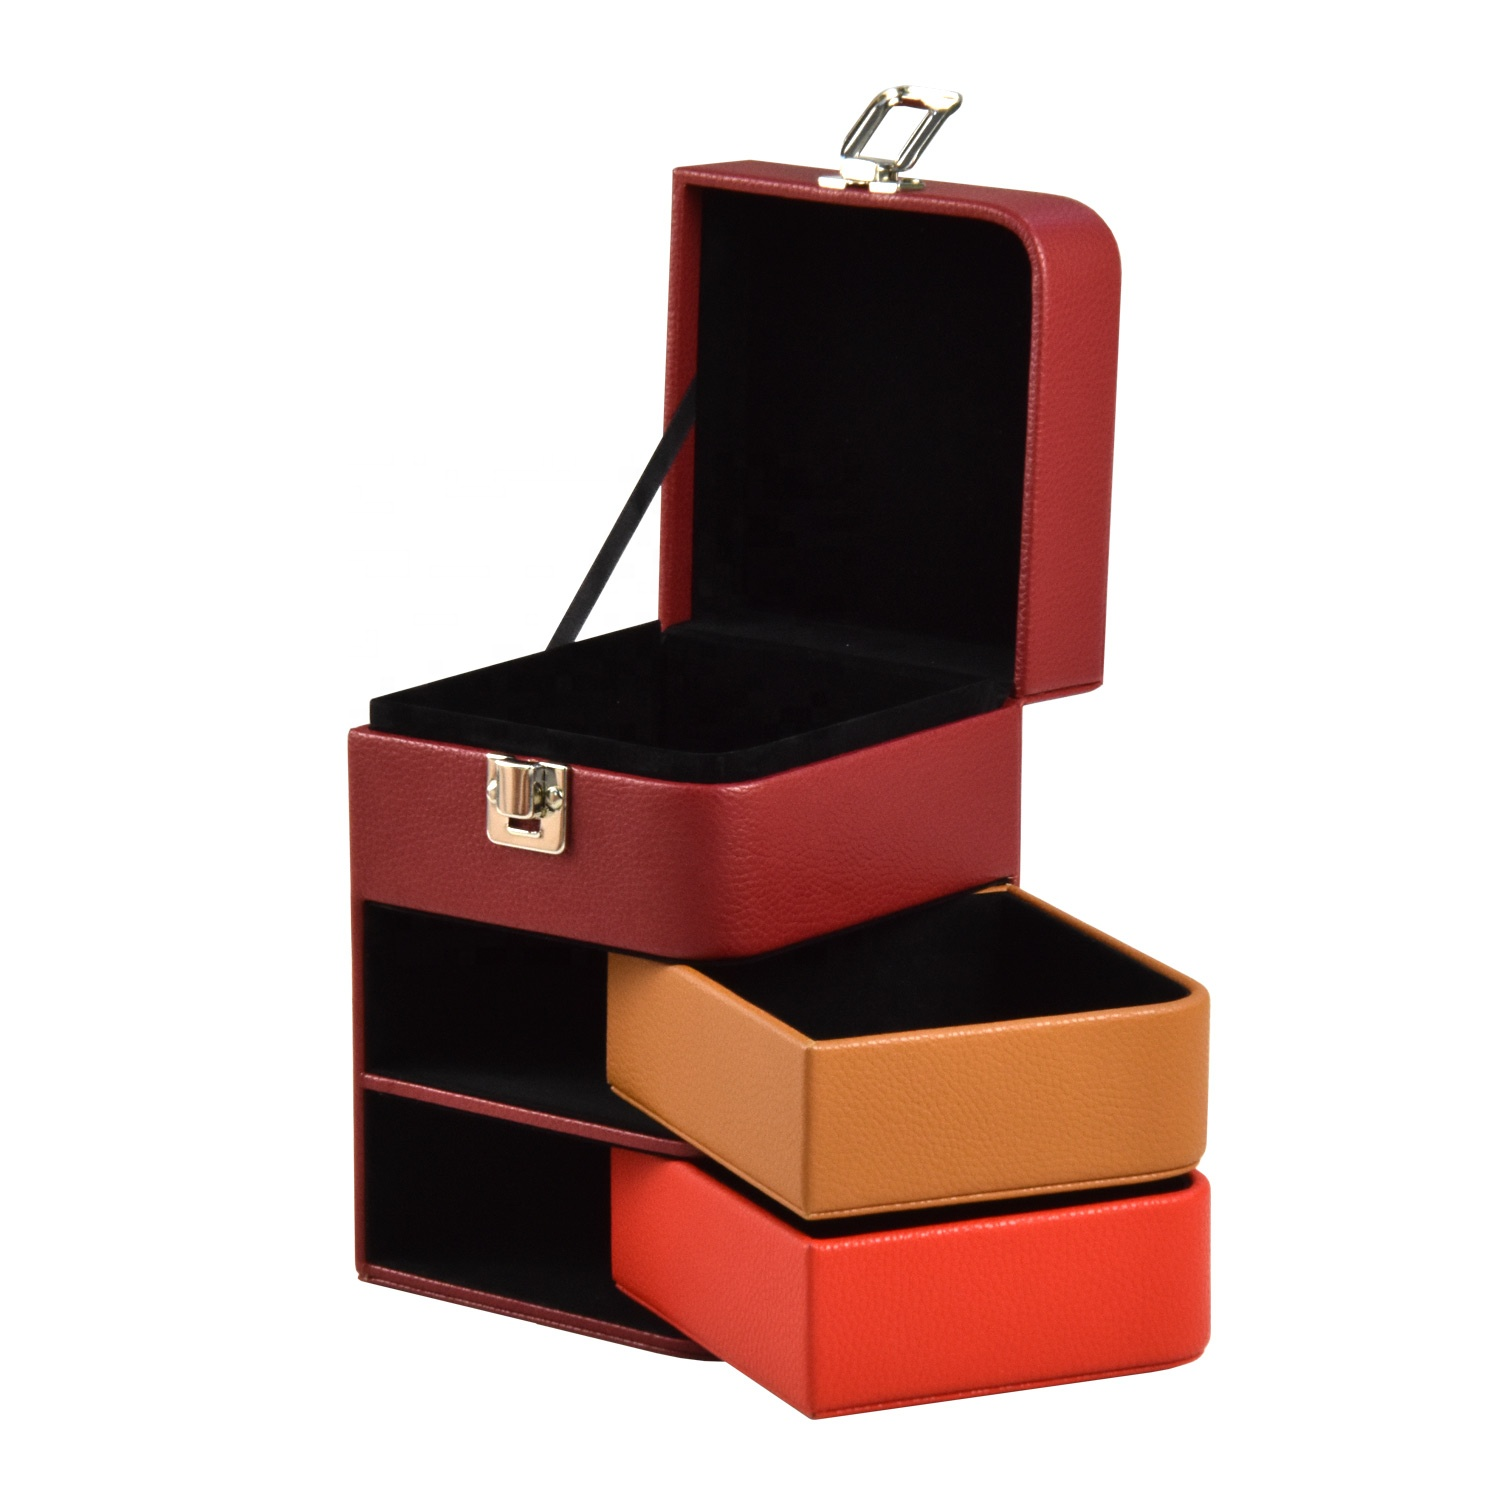 Fashionable creative personalized nice jewelry box multi drawers luxury travel jewelry case paper cardboard jewelry box